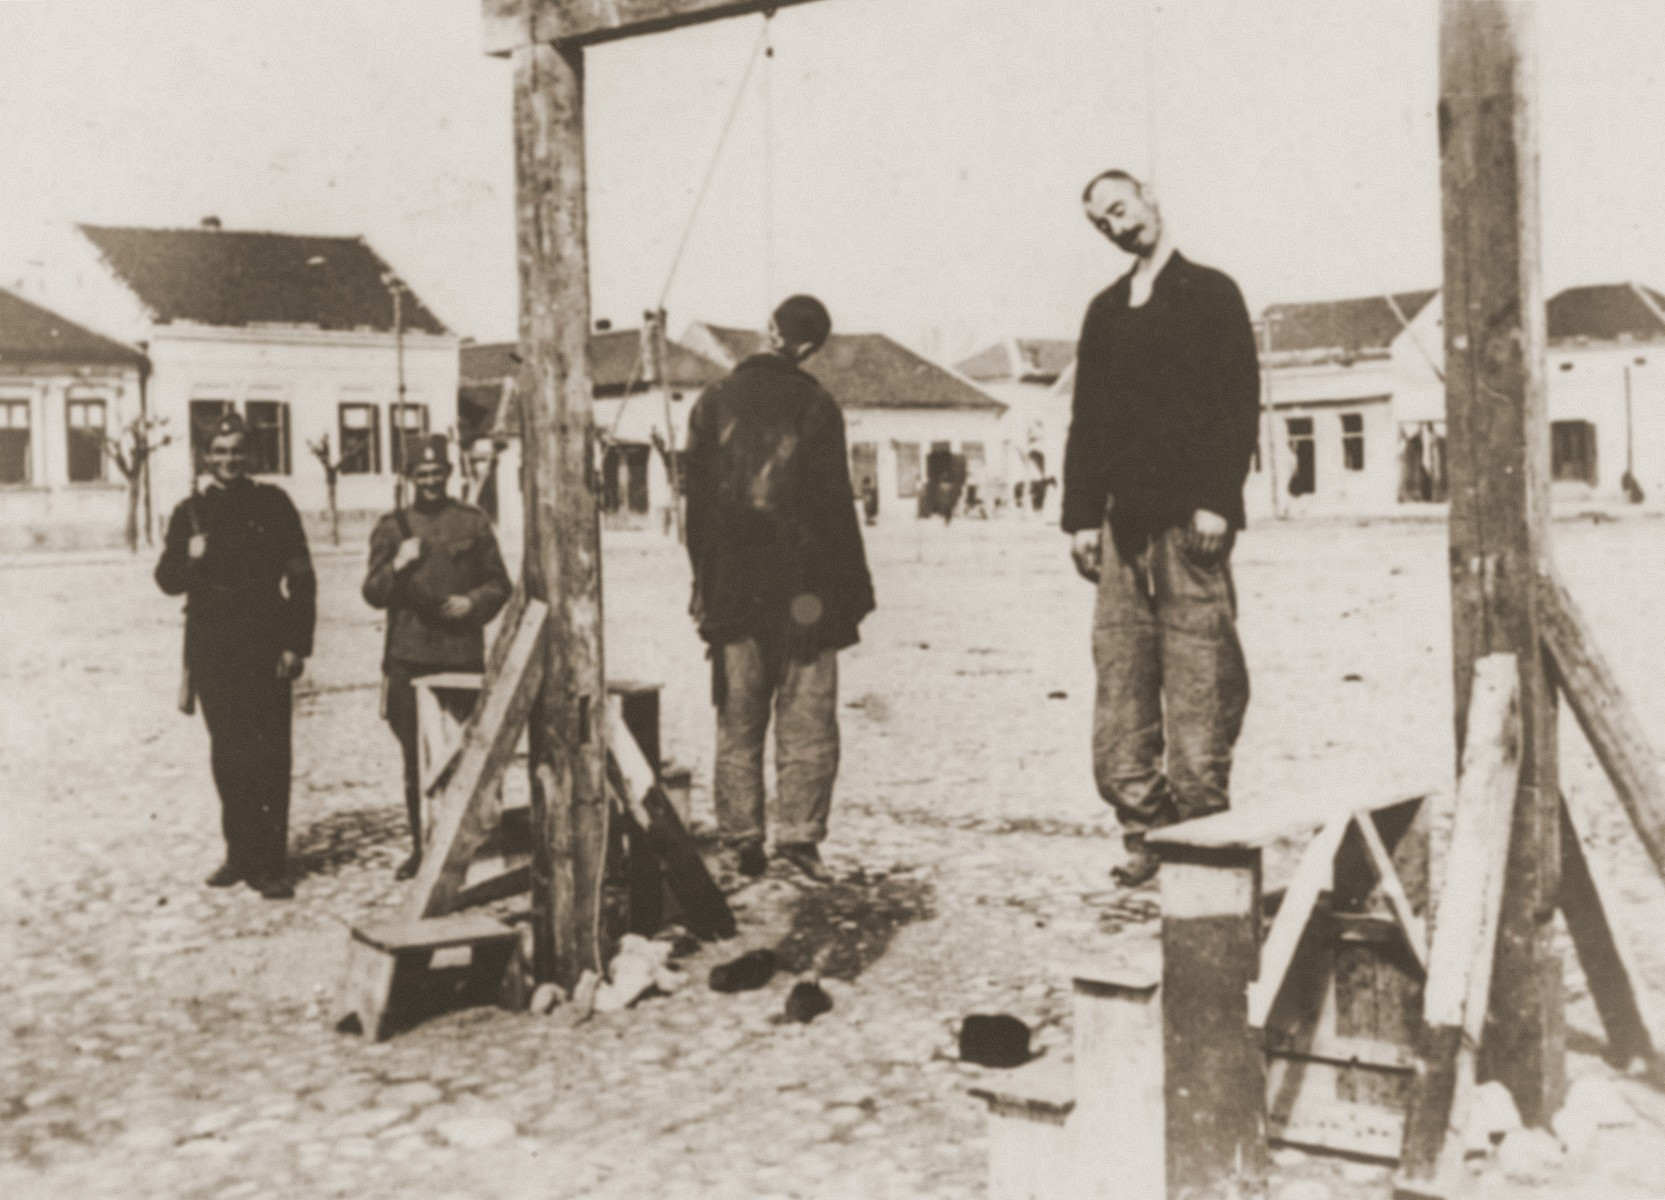 The bodies of Steven Borota and Yossipe Mayer, two Serbian partisans, hang from a gallows in Valjevo, where they were executed by Croatian collaborators under the command of Milan Neditch.